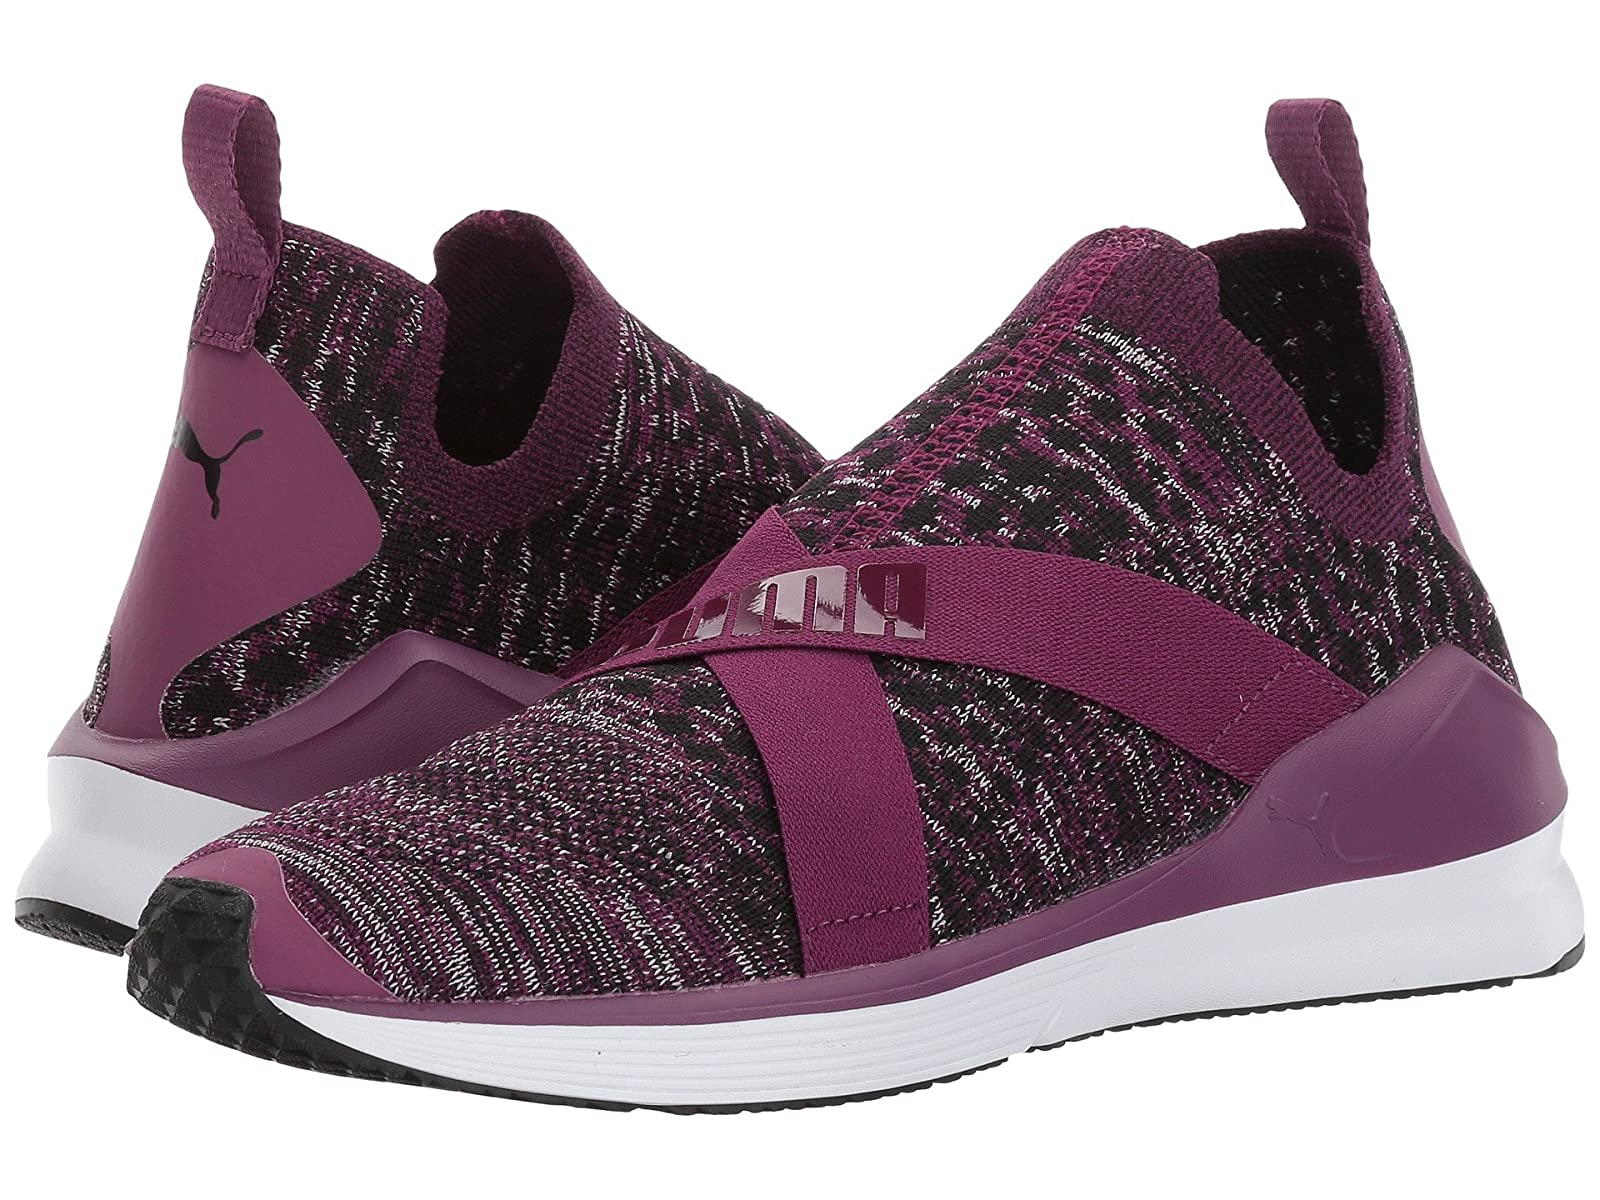 PUMA Fierce EvoknitCheap and distinctive eye-catching shoes